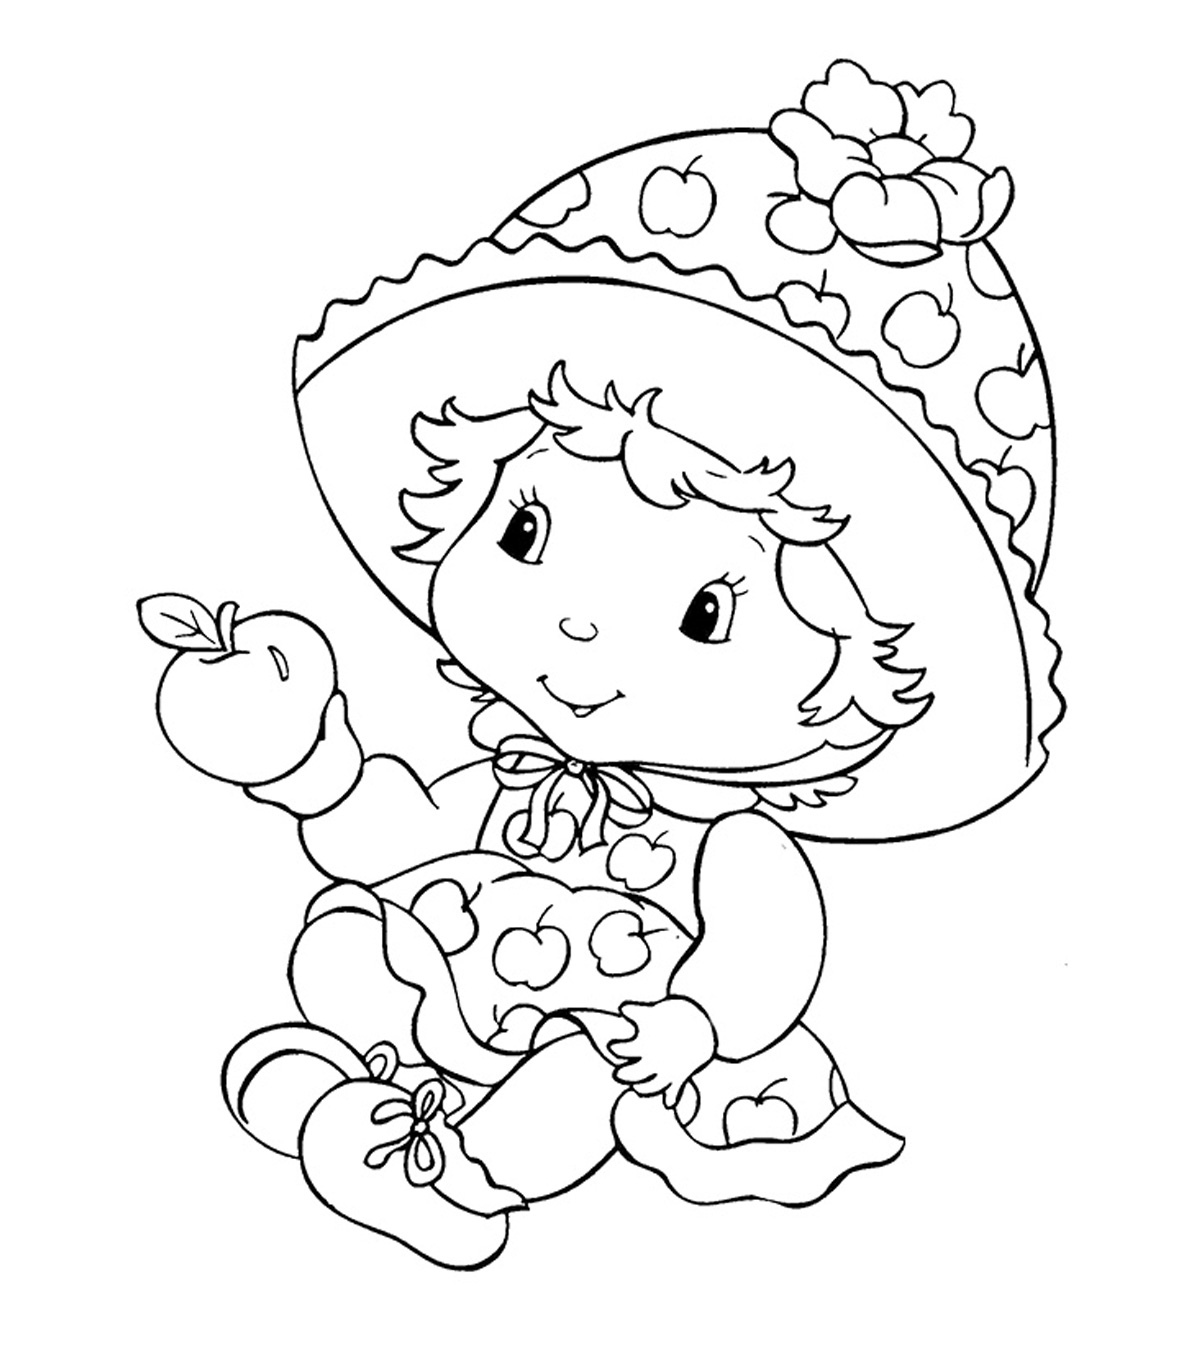 Strawberry Coloring Pages - GetColoringPages.com | 1350x1200